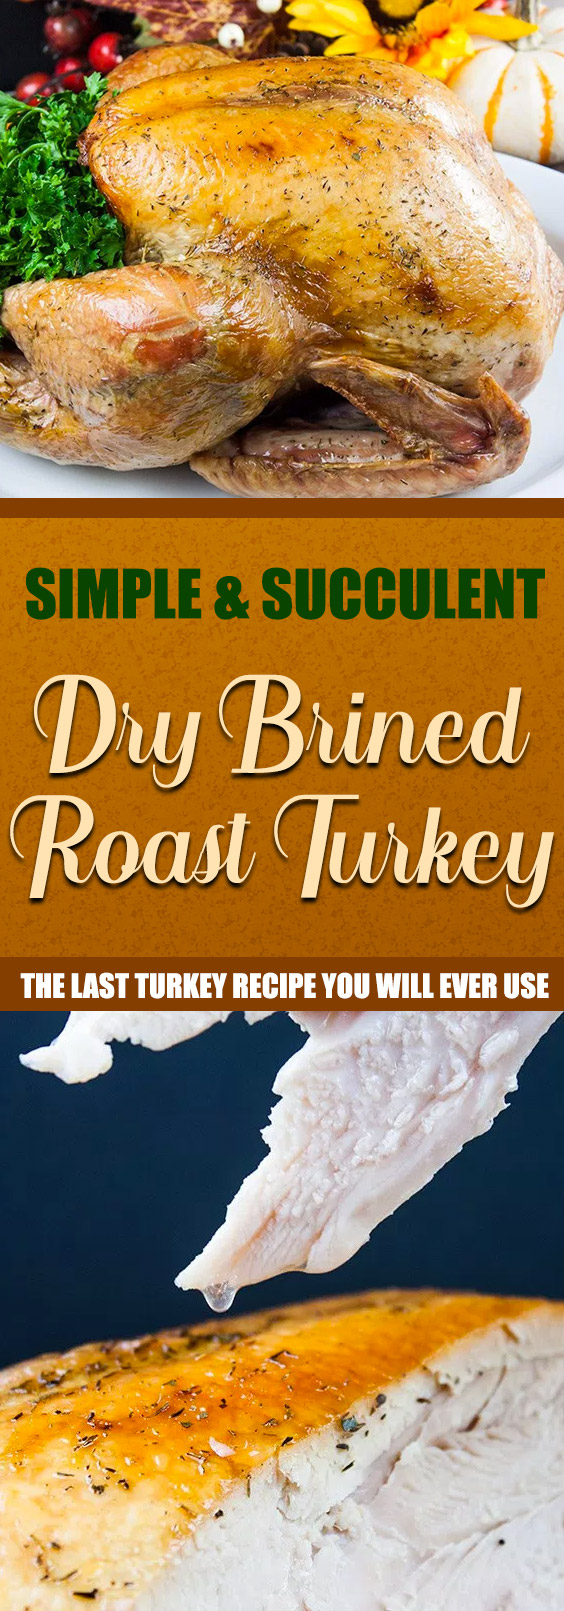 Simple Succulent Dry Brined Roast Turkey - You will never use another method again! Dry brining will give you a phenomenally moist, tender, deep flavor filled turkey. #thanksgiving #christmas #turkey #recipe #easy